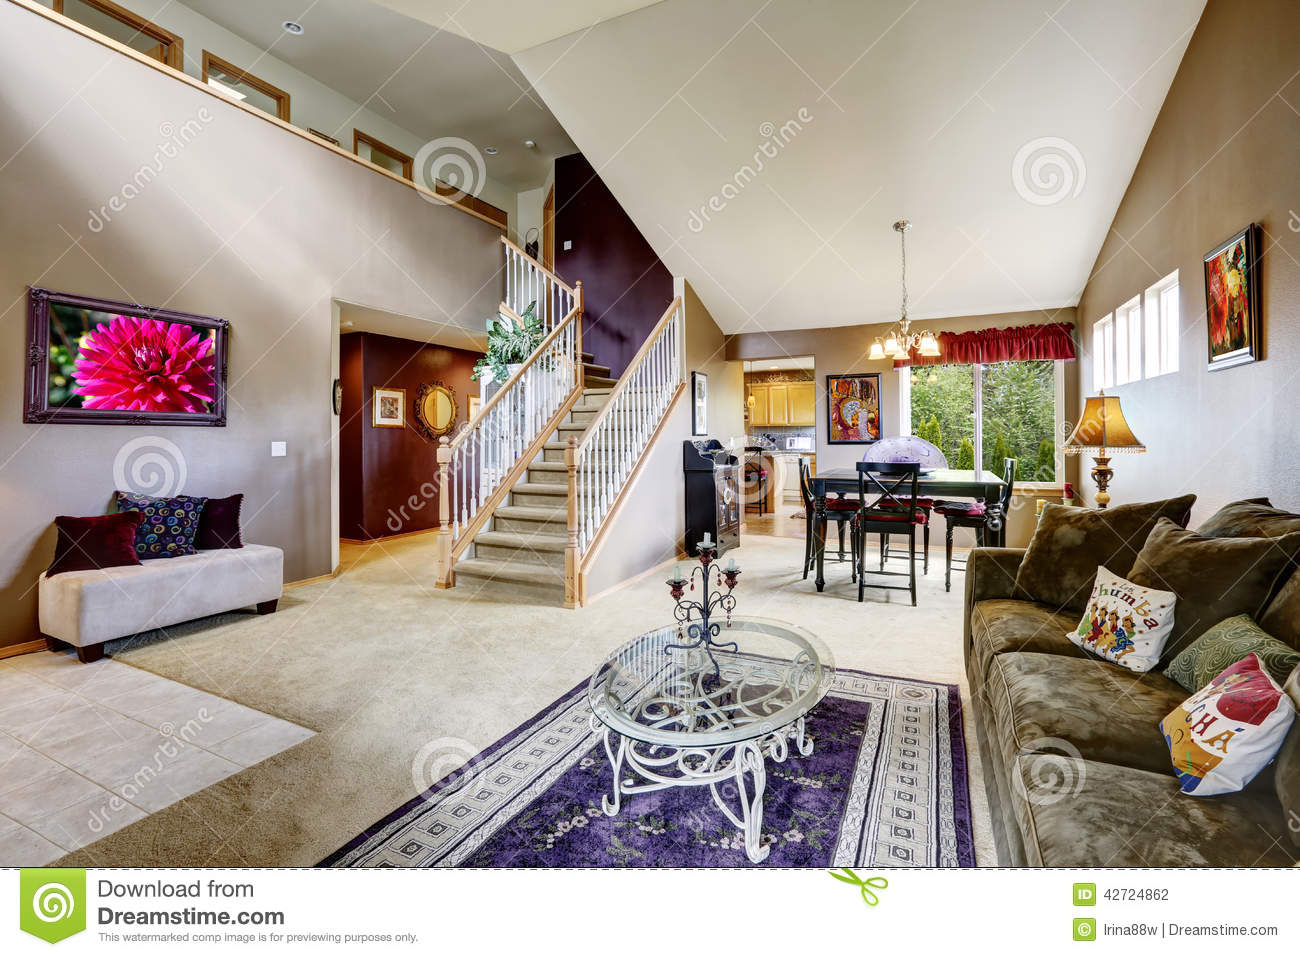 open plan staircase in living room 5th wheel toy haulers with front house interior floor high vaulted ceiling diining area and view